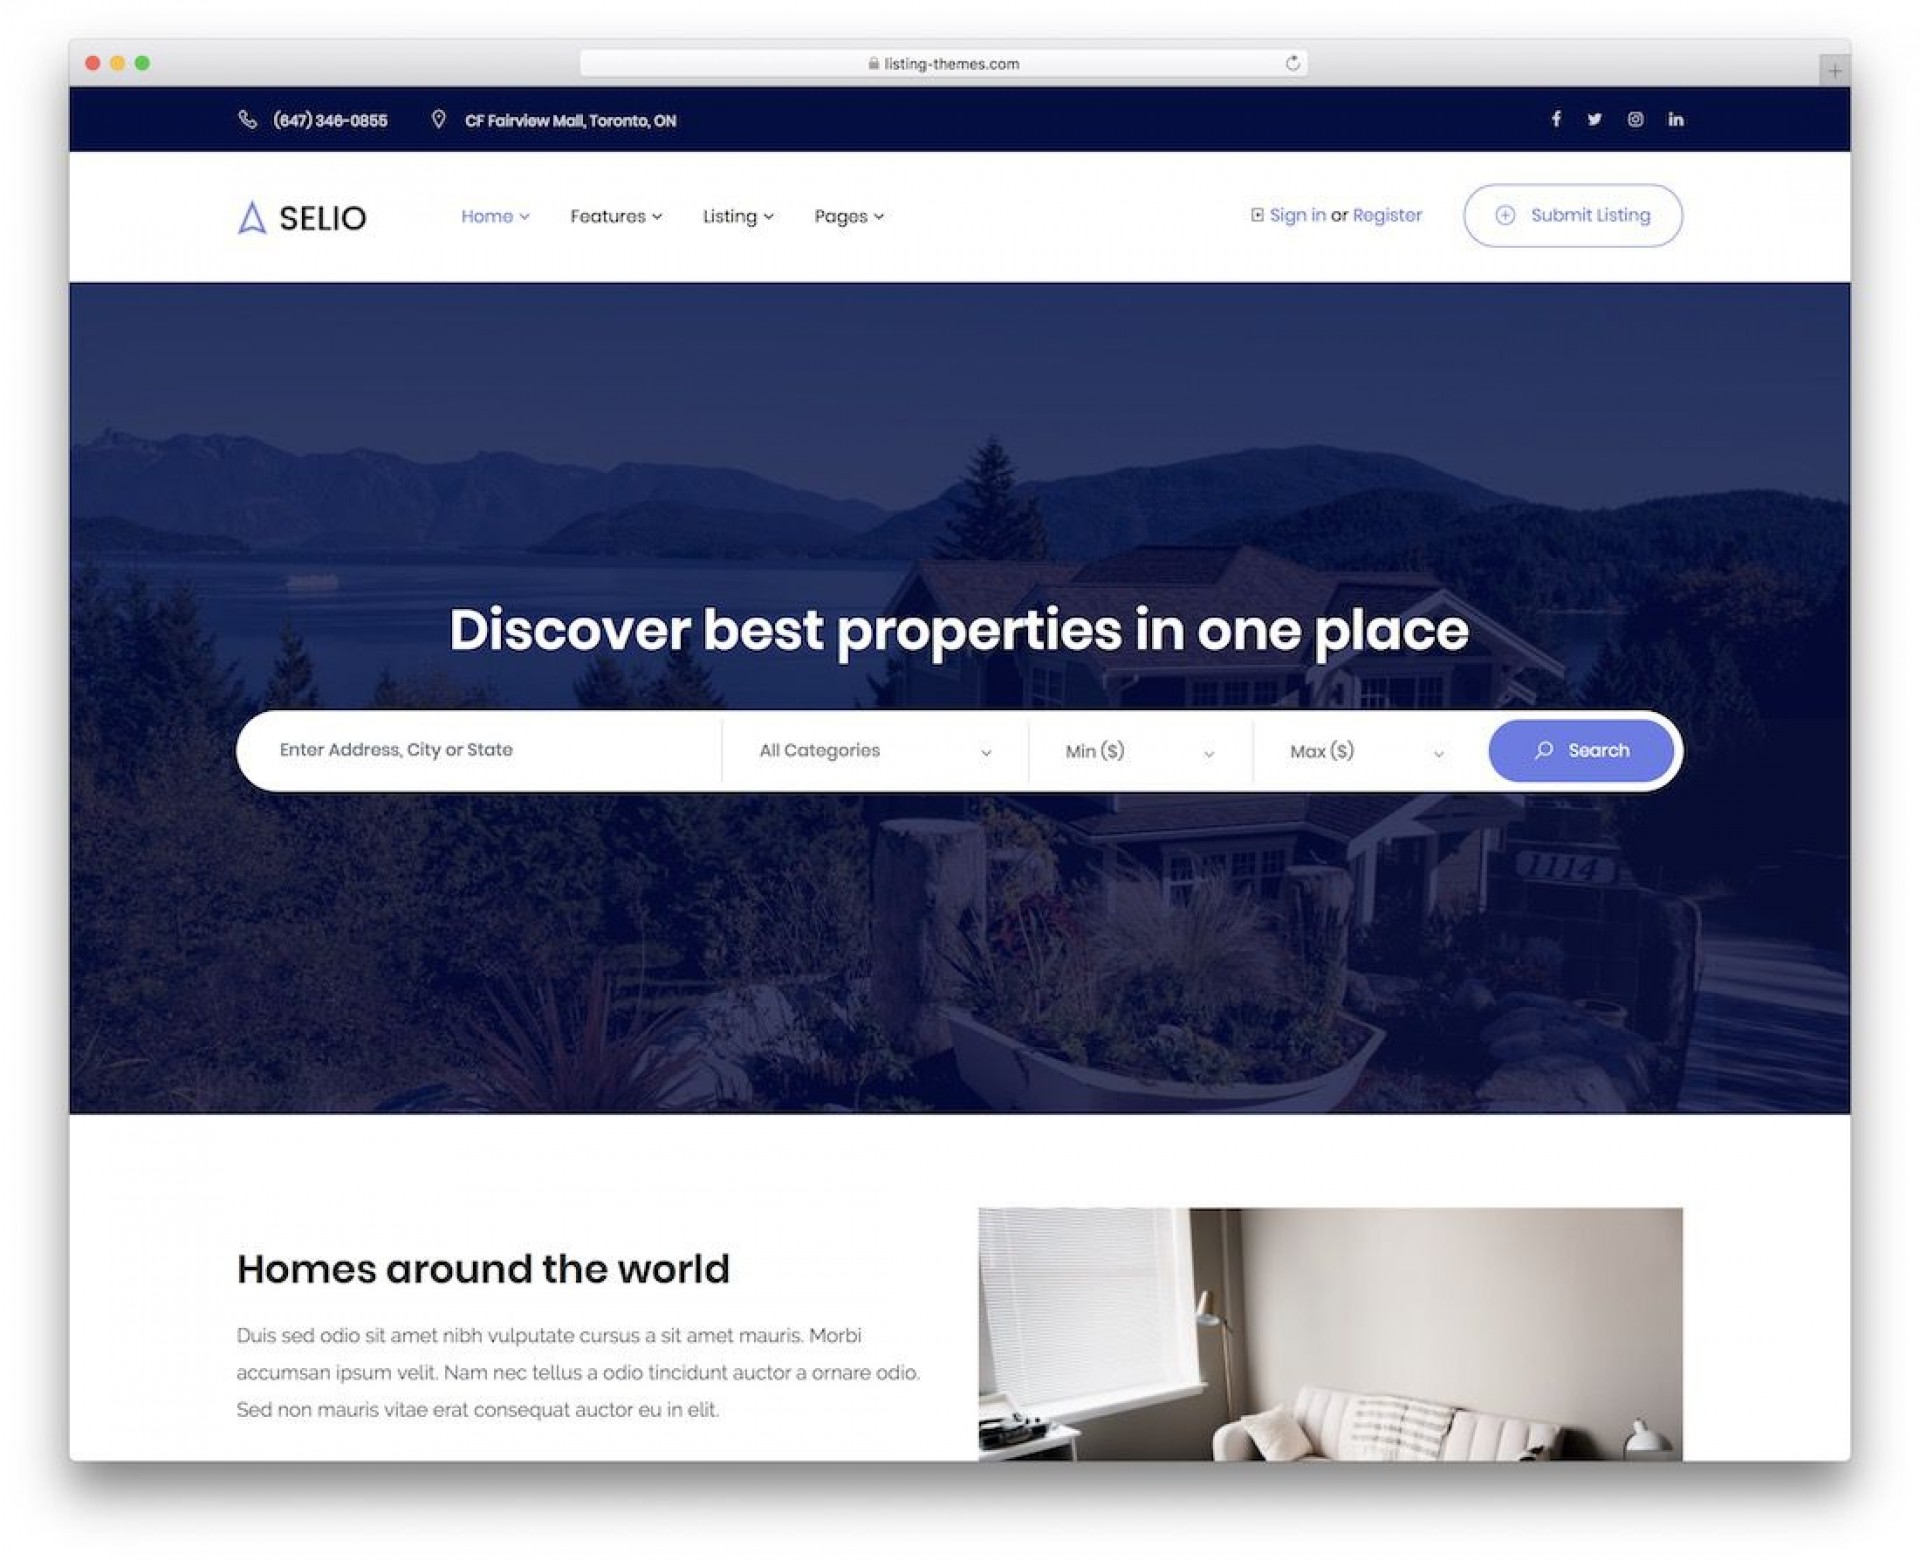 017 Unforgettable Real Estate Website Template High Definition  Templates Bootstrap Free Html5 Best Wordpres1920